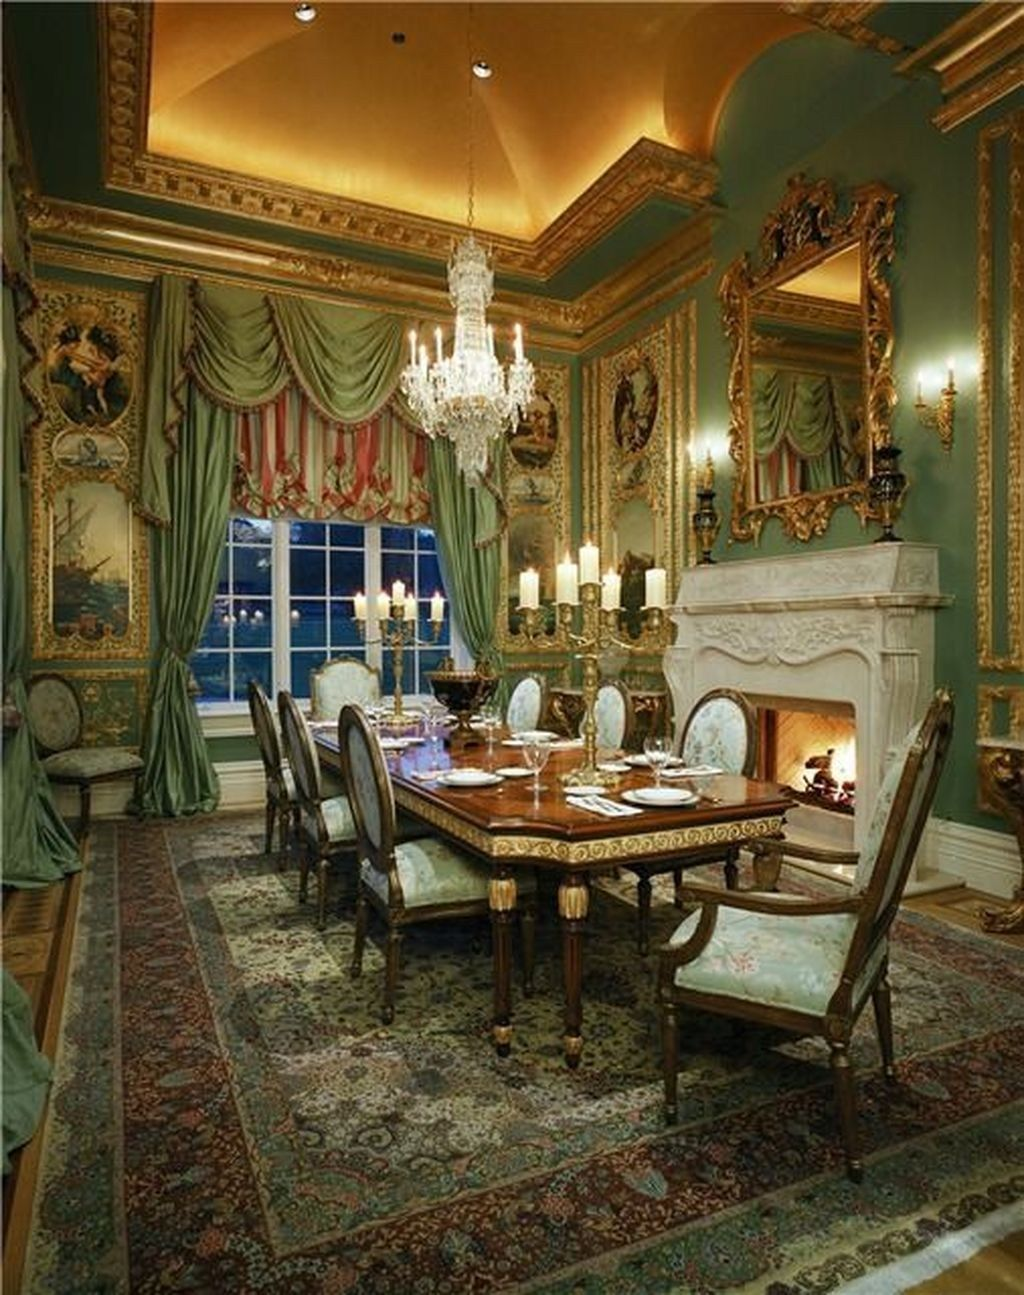 46 Stylish Victorian Dining Room Ideas Victorian Interior Design